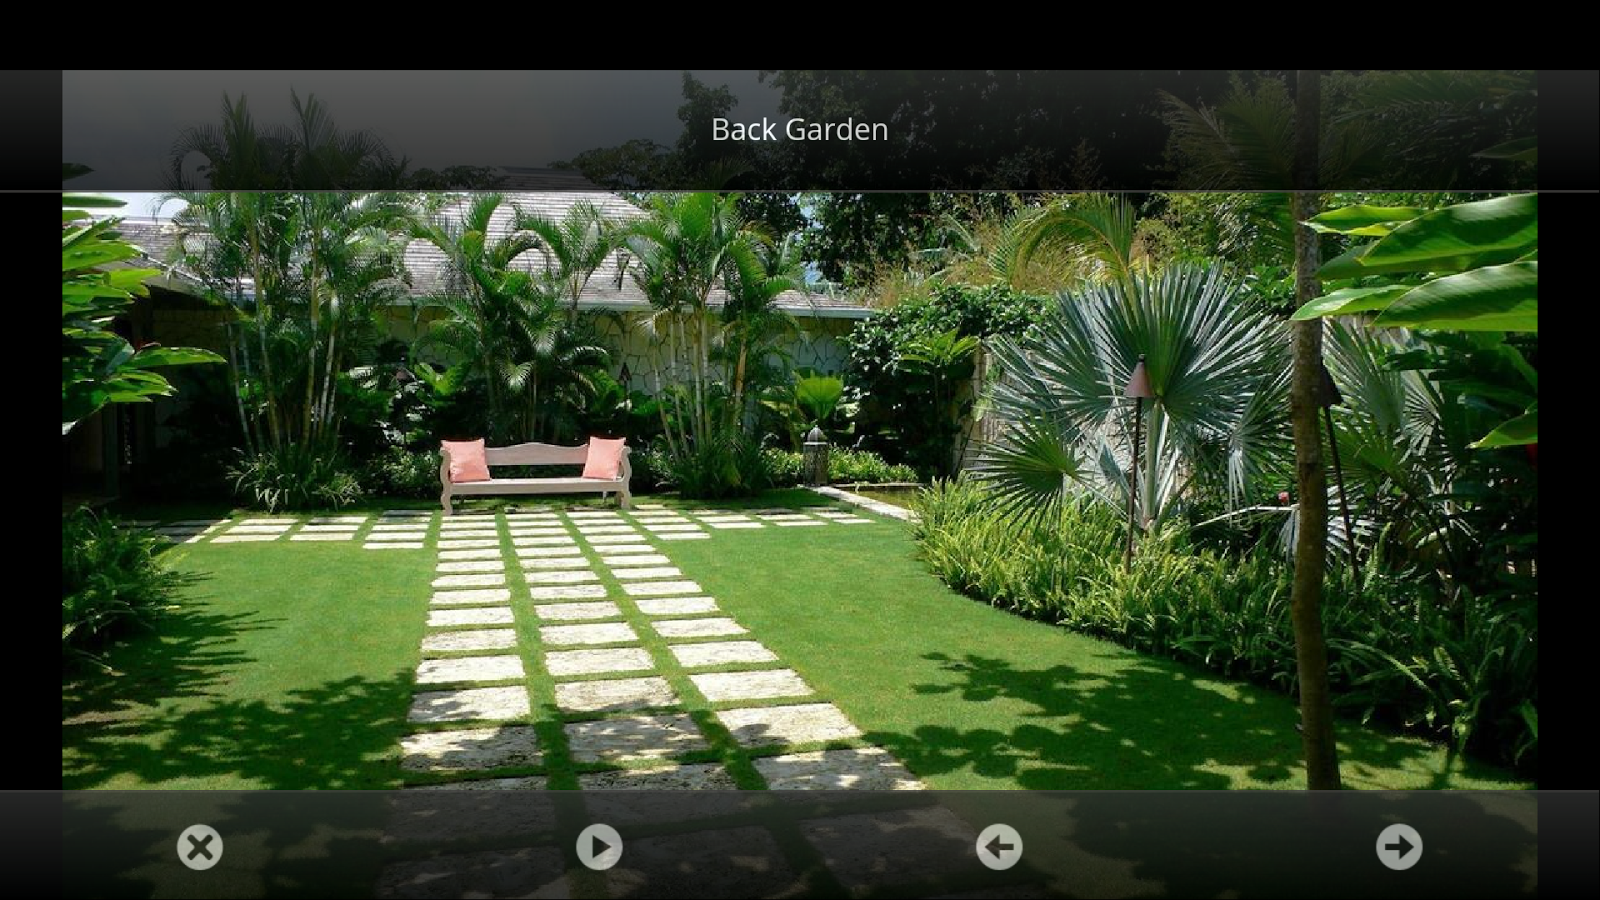 Landscape garden decor android apps on google play for Design your own landscape